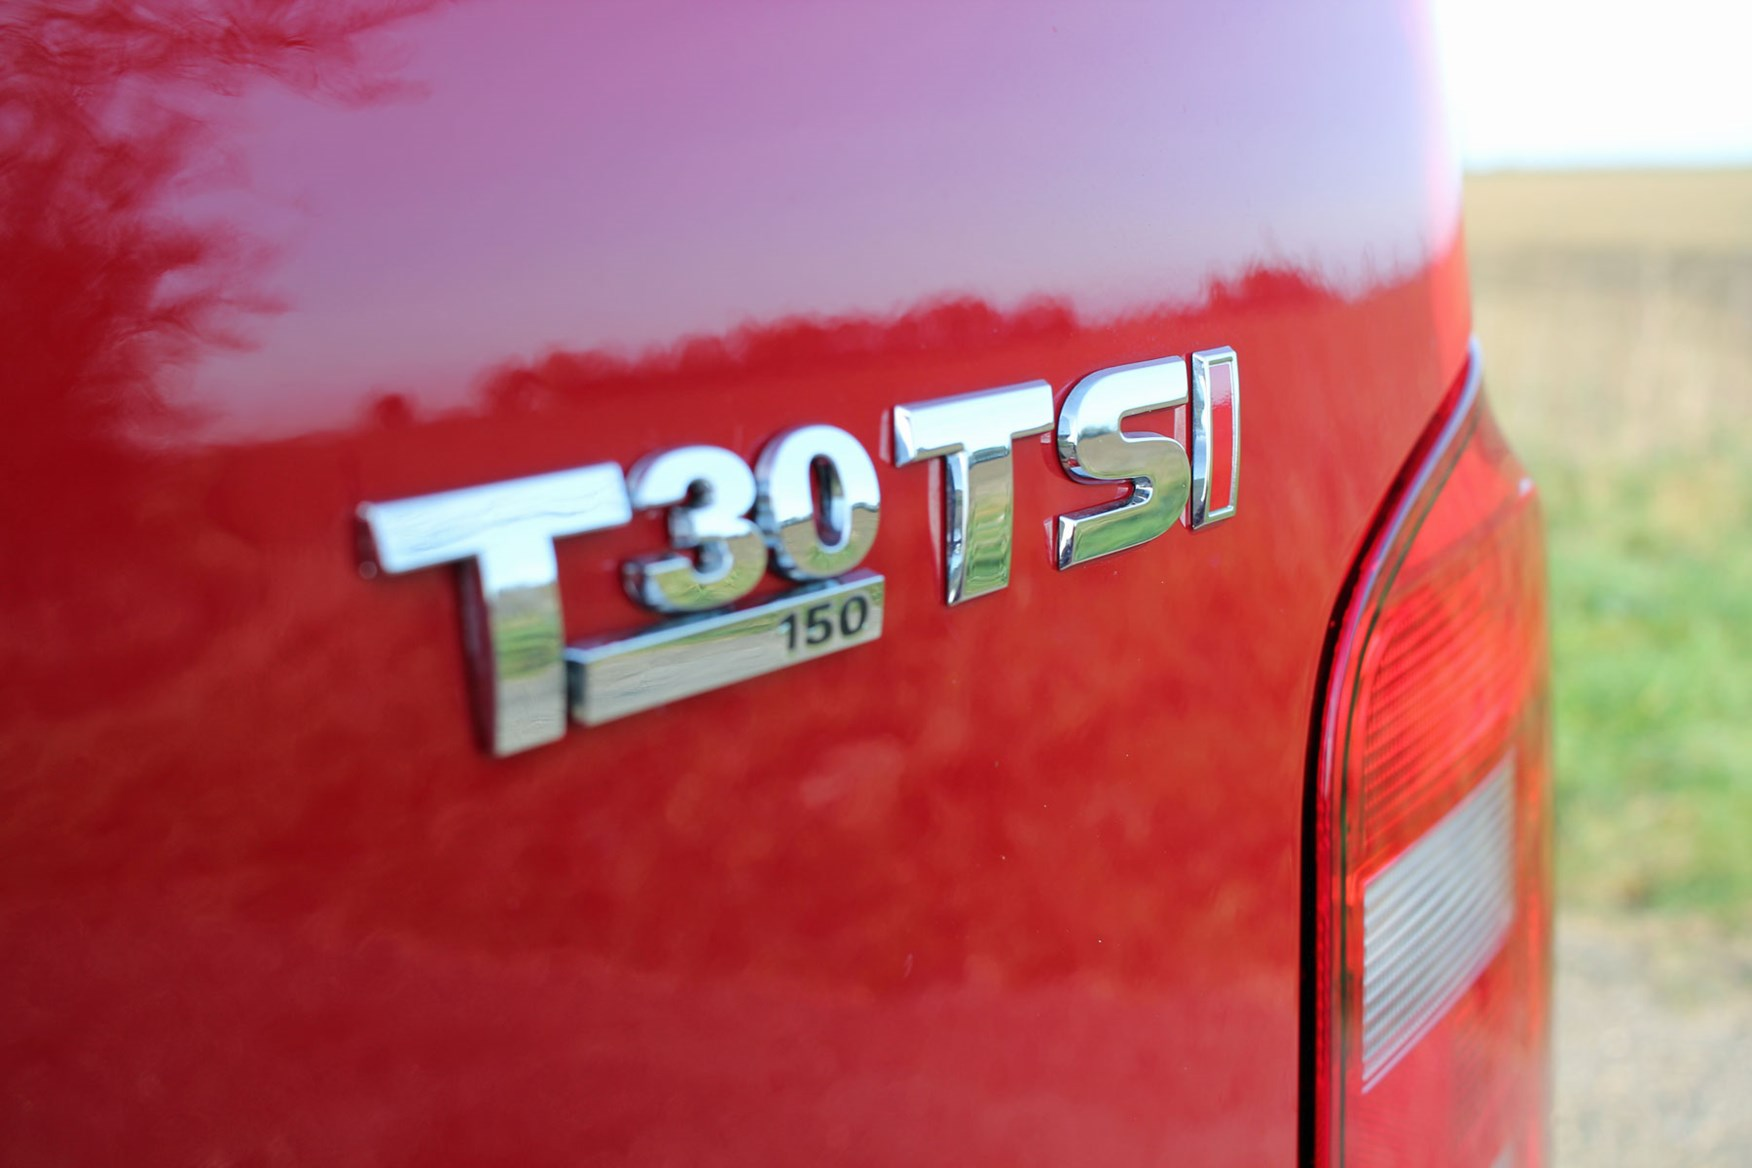 VW Transporter T6 TSI 150 review - T30 badge